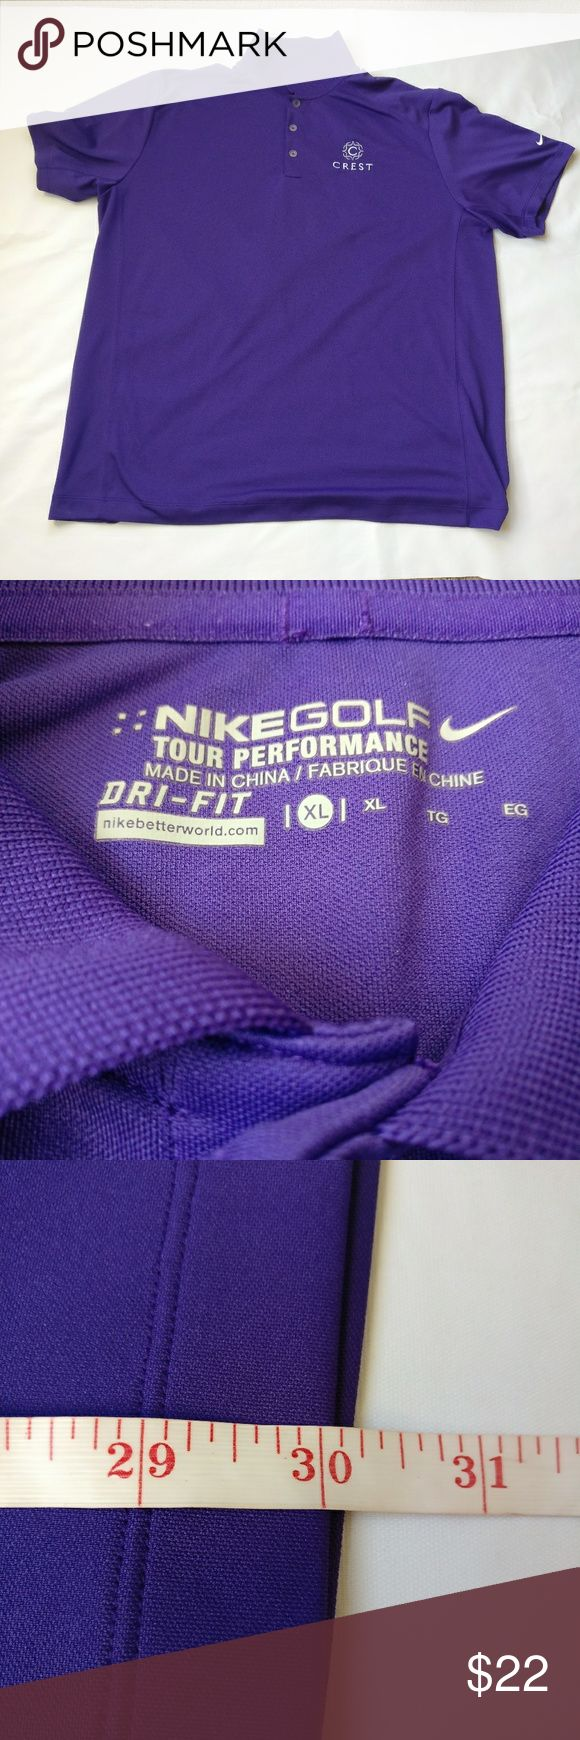 Nike Golf DriFit Tour Performance Xl Purple Polo Gently used before hand. No tears or holes.  TAG SIZE: XL  Perfect for casual wear, during the summer and or spring. Would look great on khakis and or golf shorts out on the golf course.  Length:  25 inches armpit to armpit & 30 inches shoulder to base  Color - Purple Nike Shirts Polos